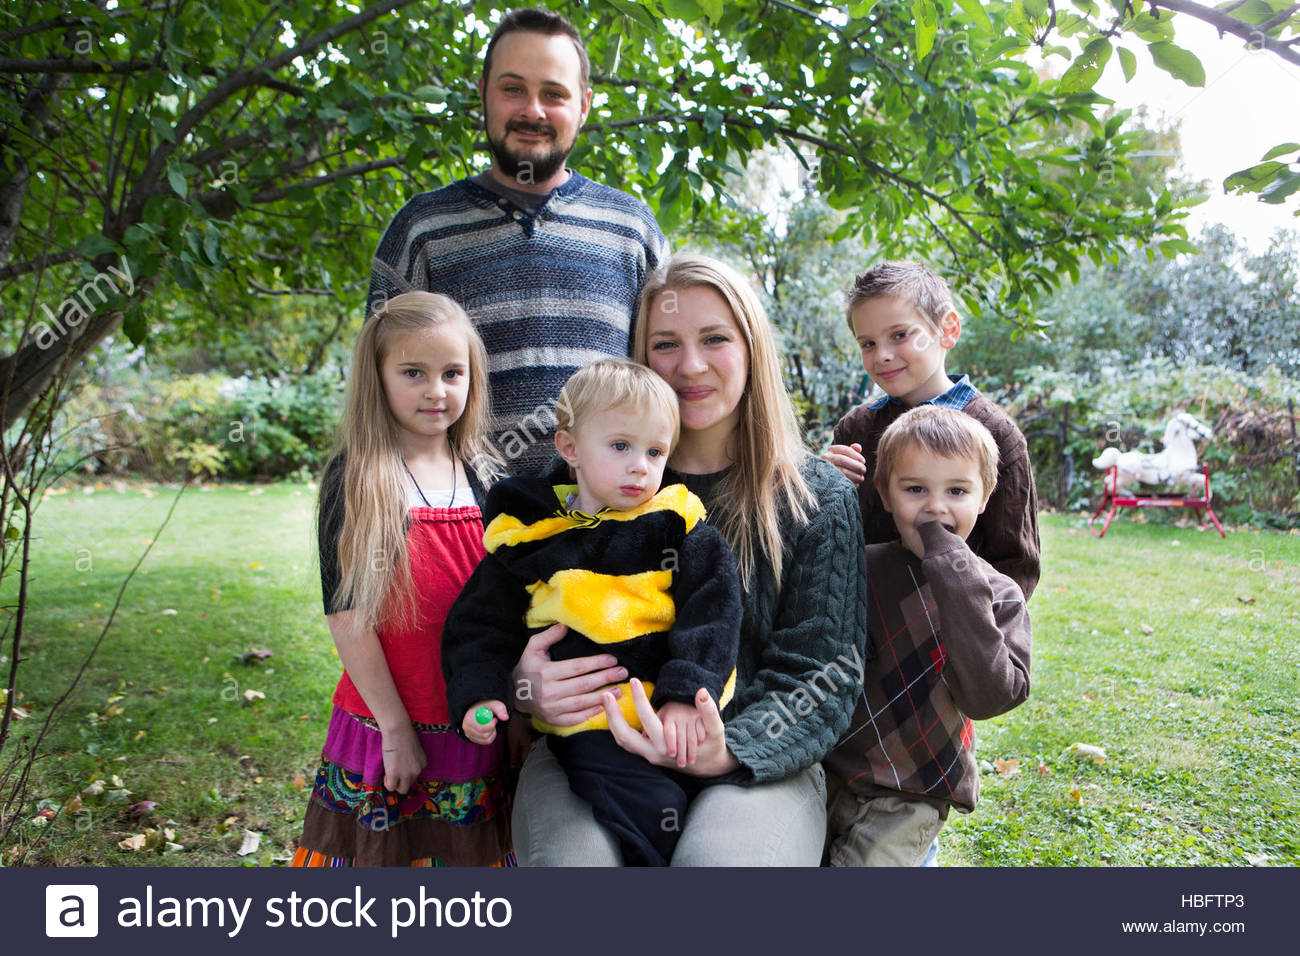 A family classified as food insecure. - Stock Image